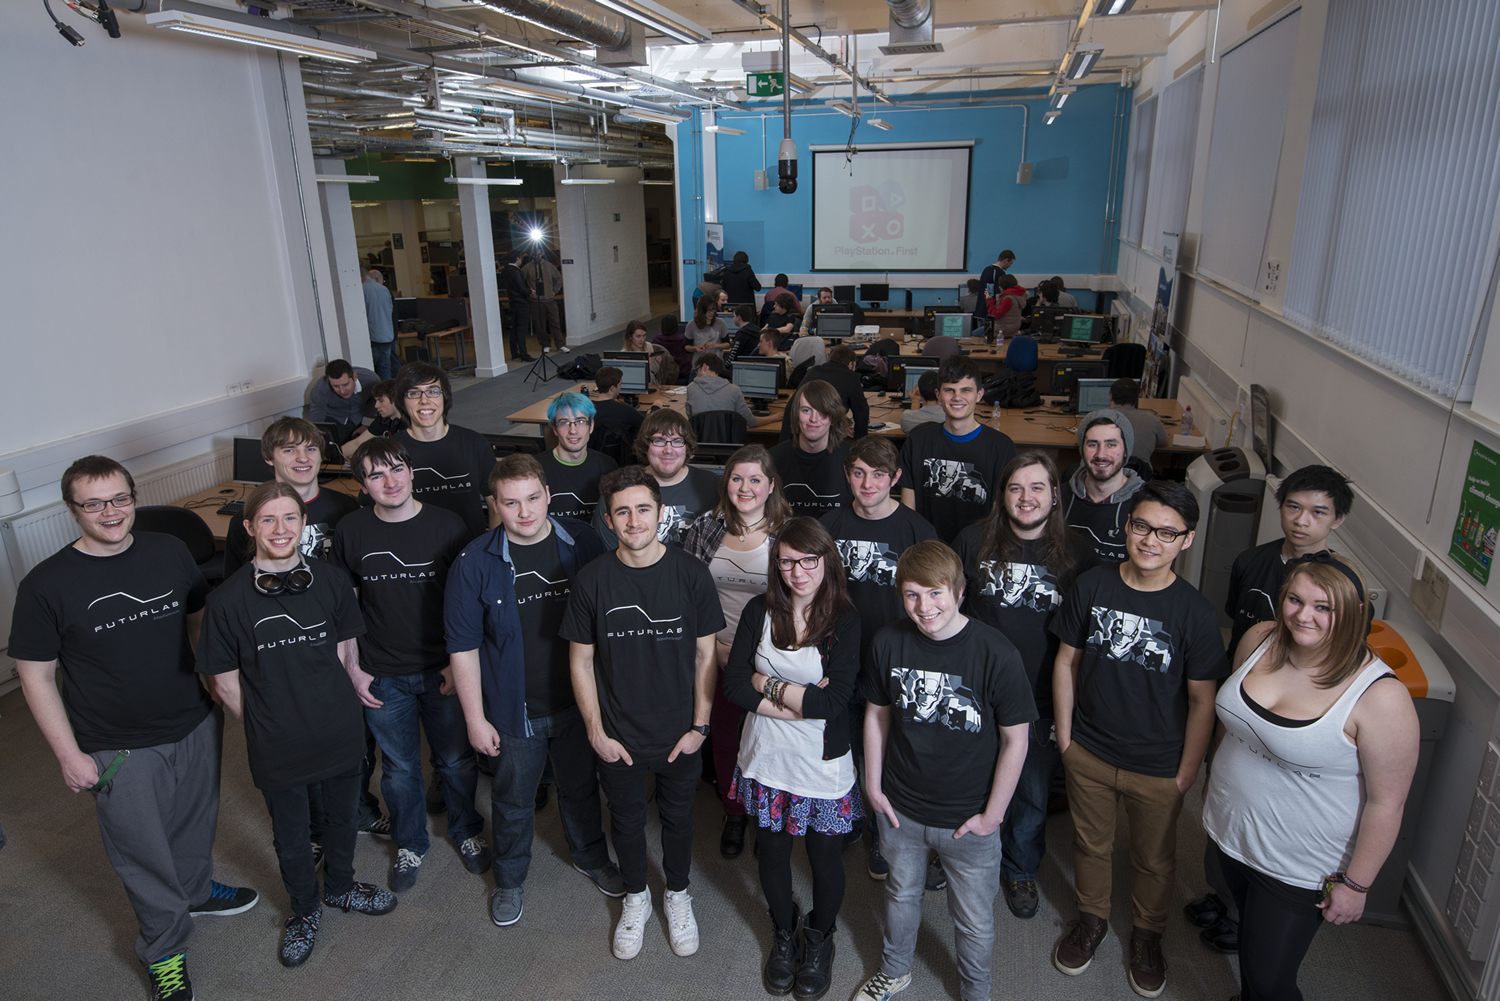 FuturLab's satellite teams ('Velocity Raptors' & 'Sasquatch') at Abertay University's PlayStation Vita Lab, a new initiative to get students ready for the workplace.